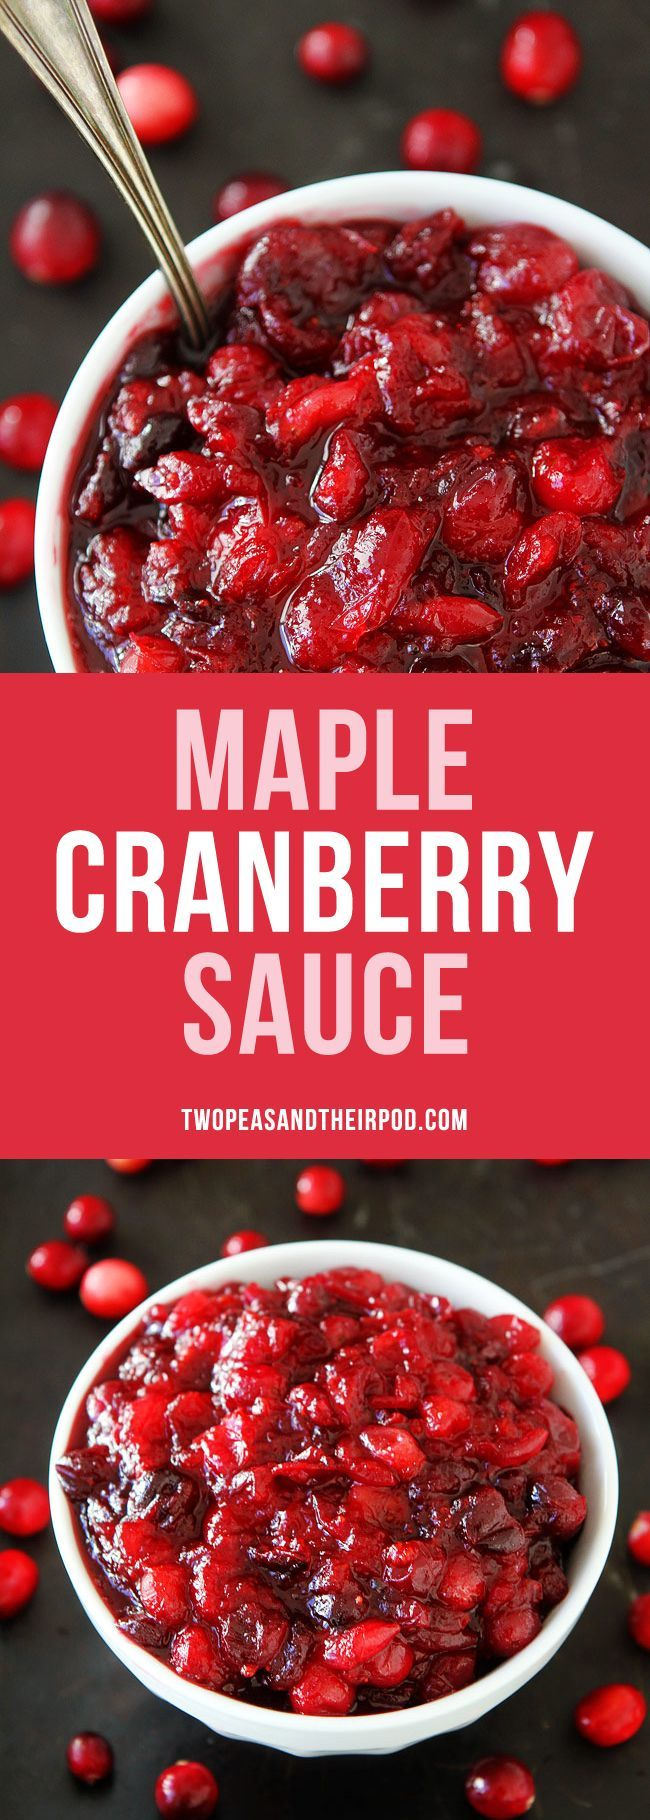 Maple Cranberry Sauce-fresh cranberry sauce sweetened with pure maple syrup, orange zest, orange juice, and a hint of cinnamon. #Thanksgiving #holidays #cranberrysauce #cranberry